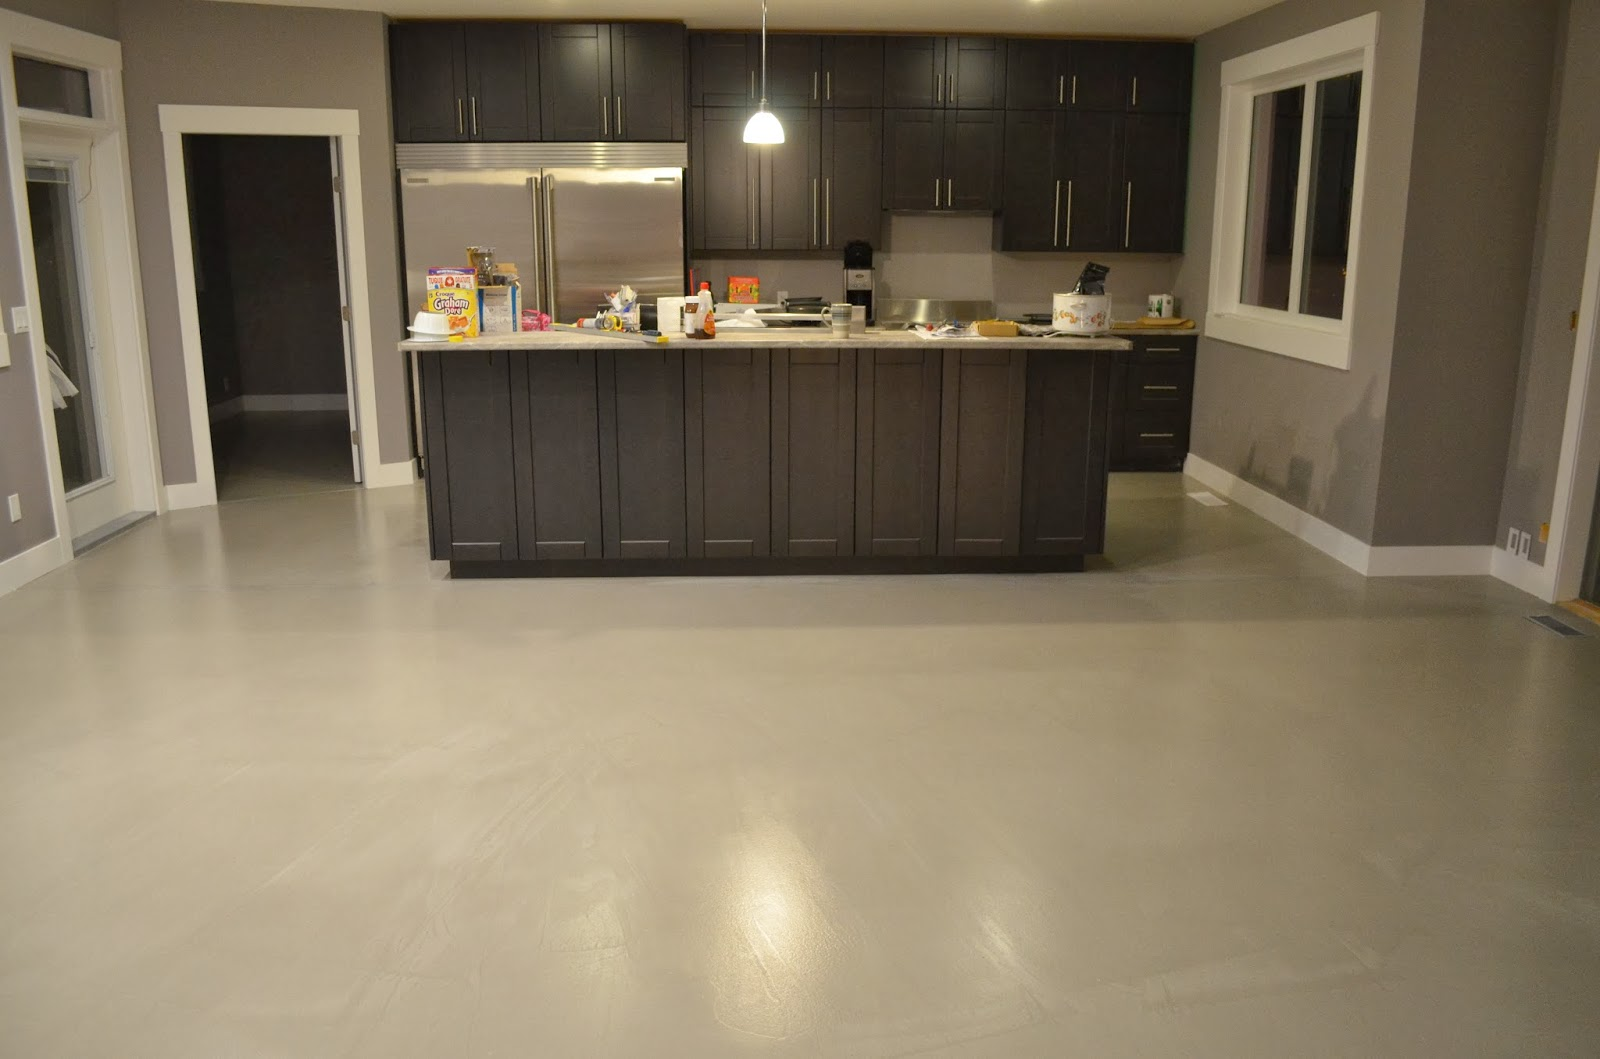 Concrete Floor Kitchen Mode Concrete Contemporary Concrete Flooring Overlay Possible On